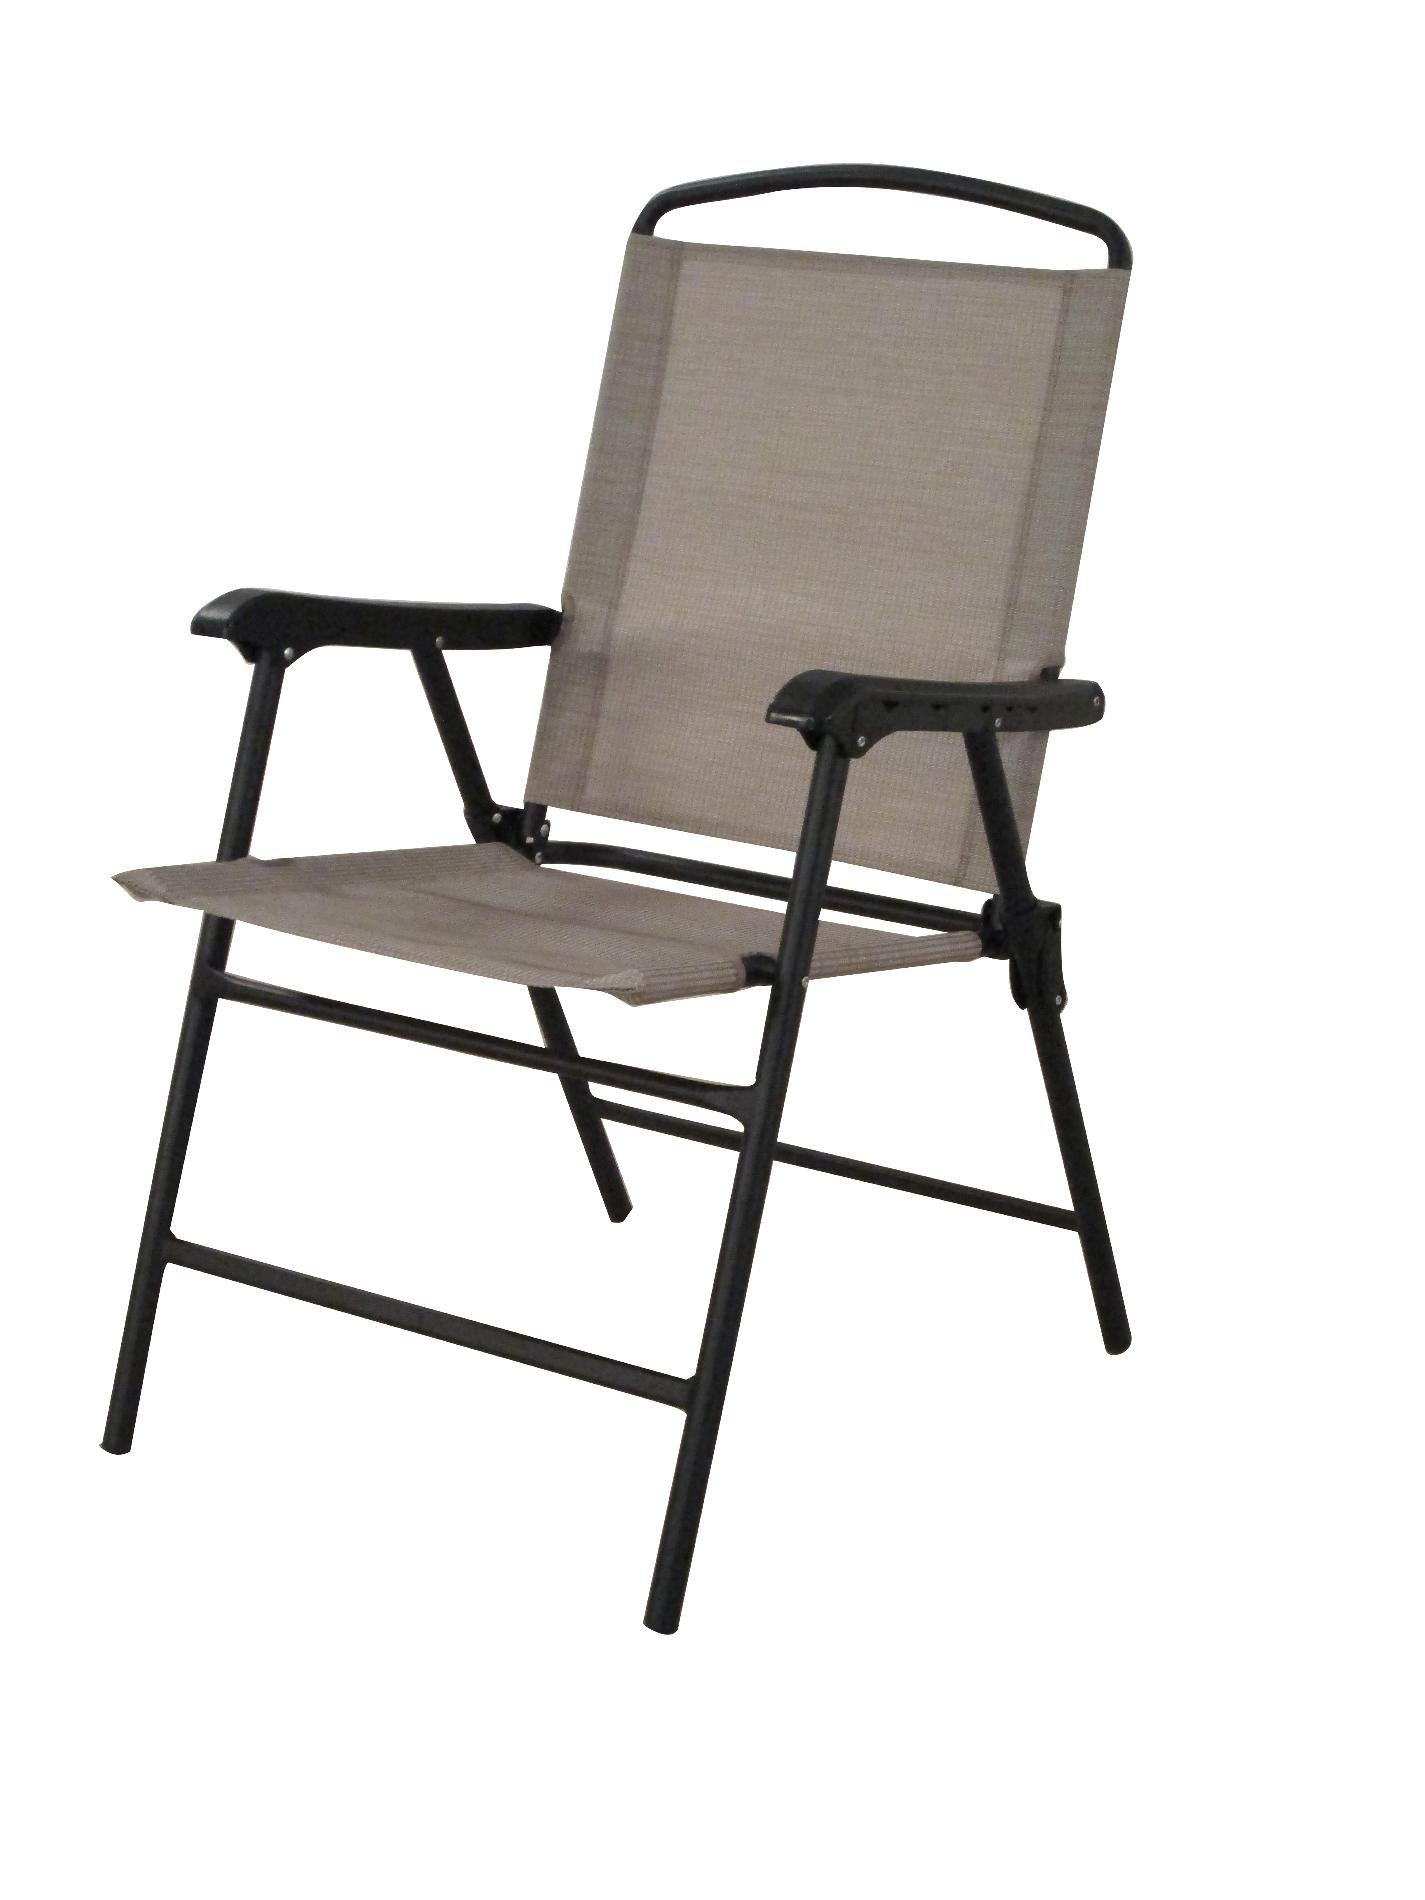 Sears Patio Chairs Fts609x Sling Back Folding Chair Sears Outlet